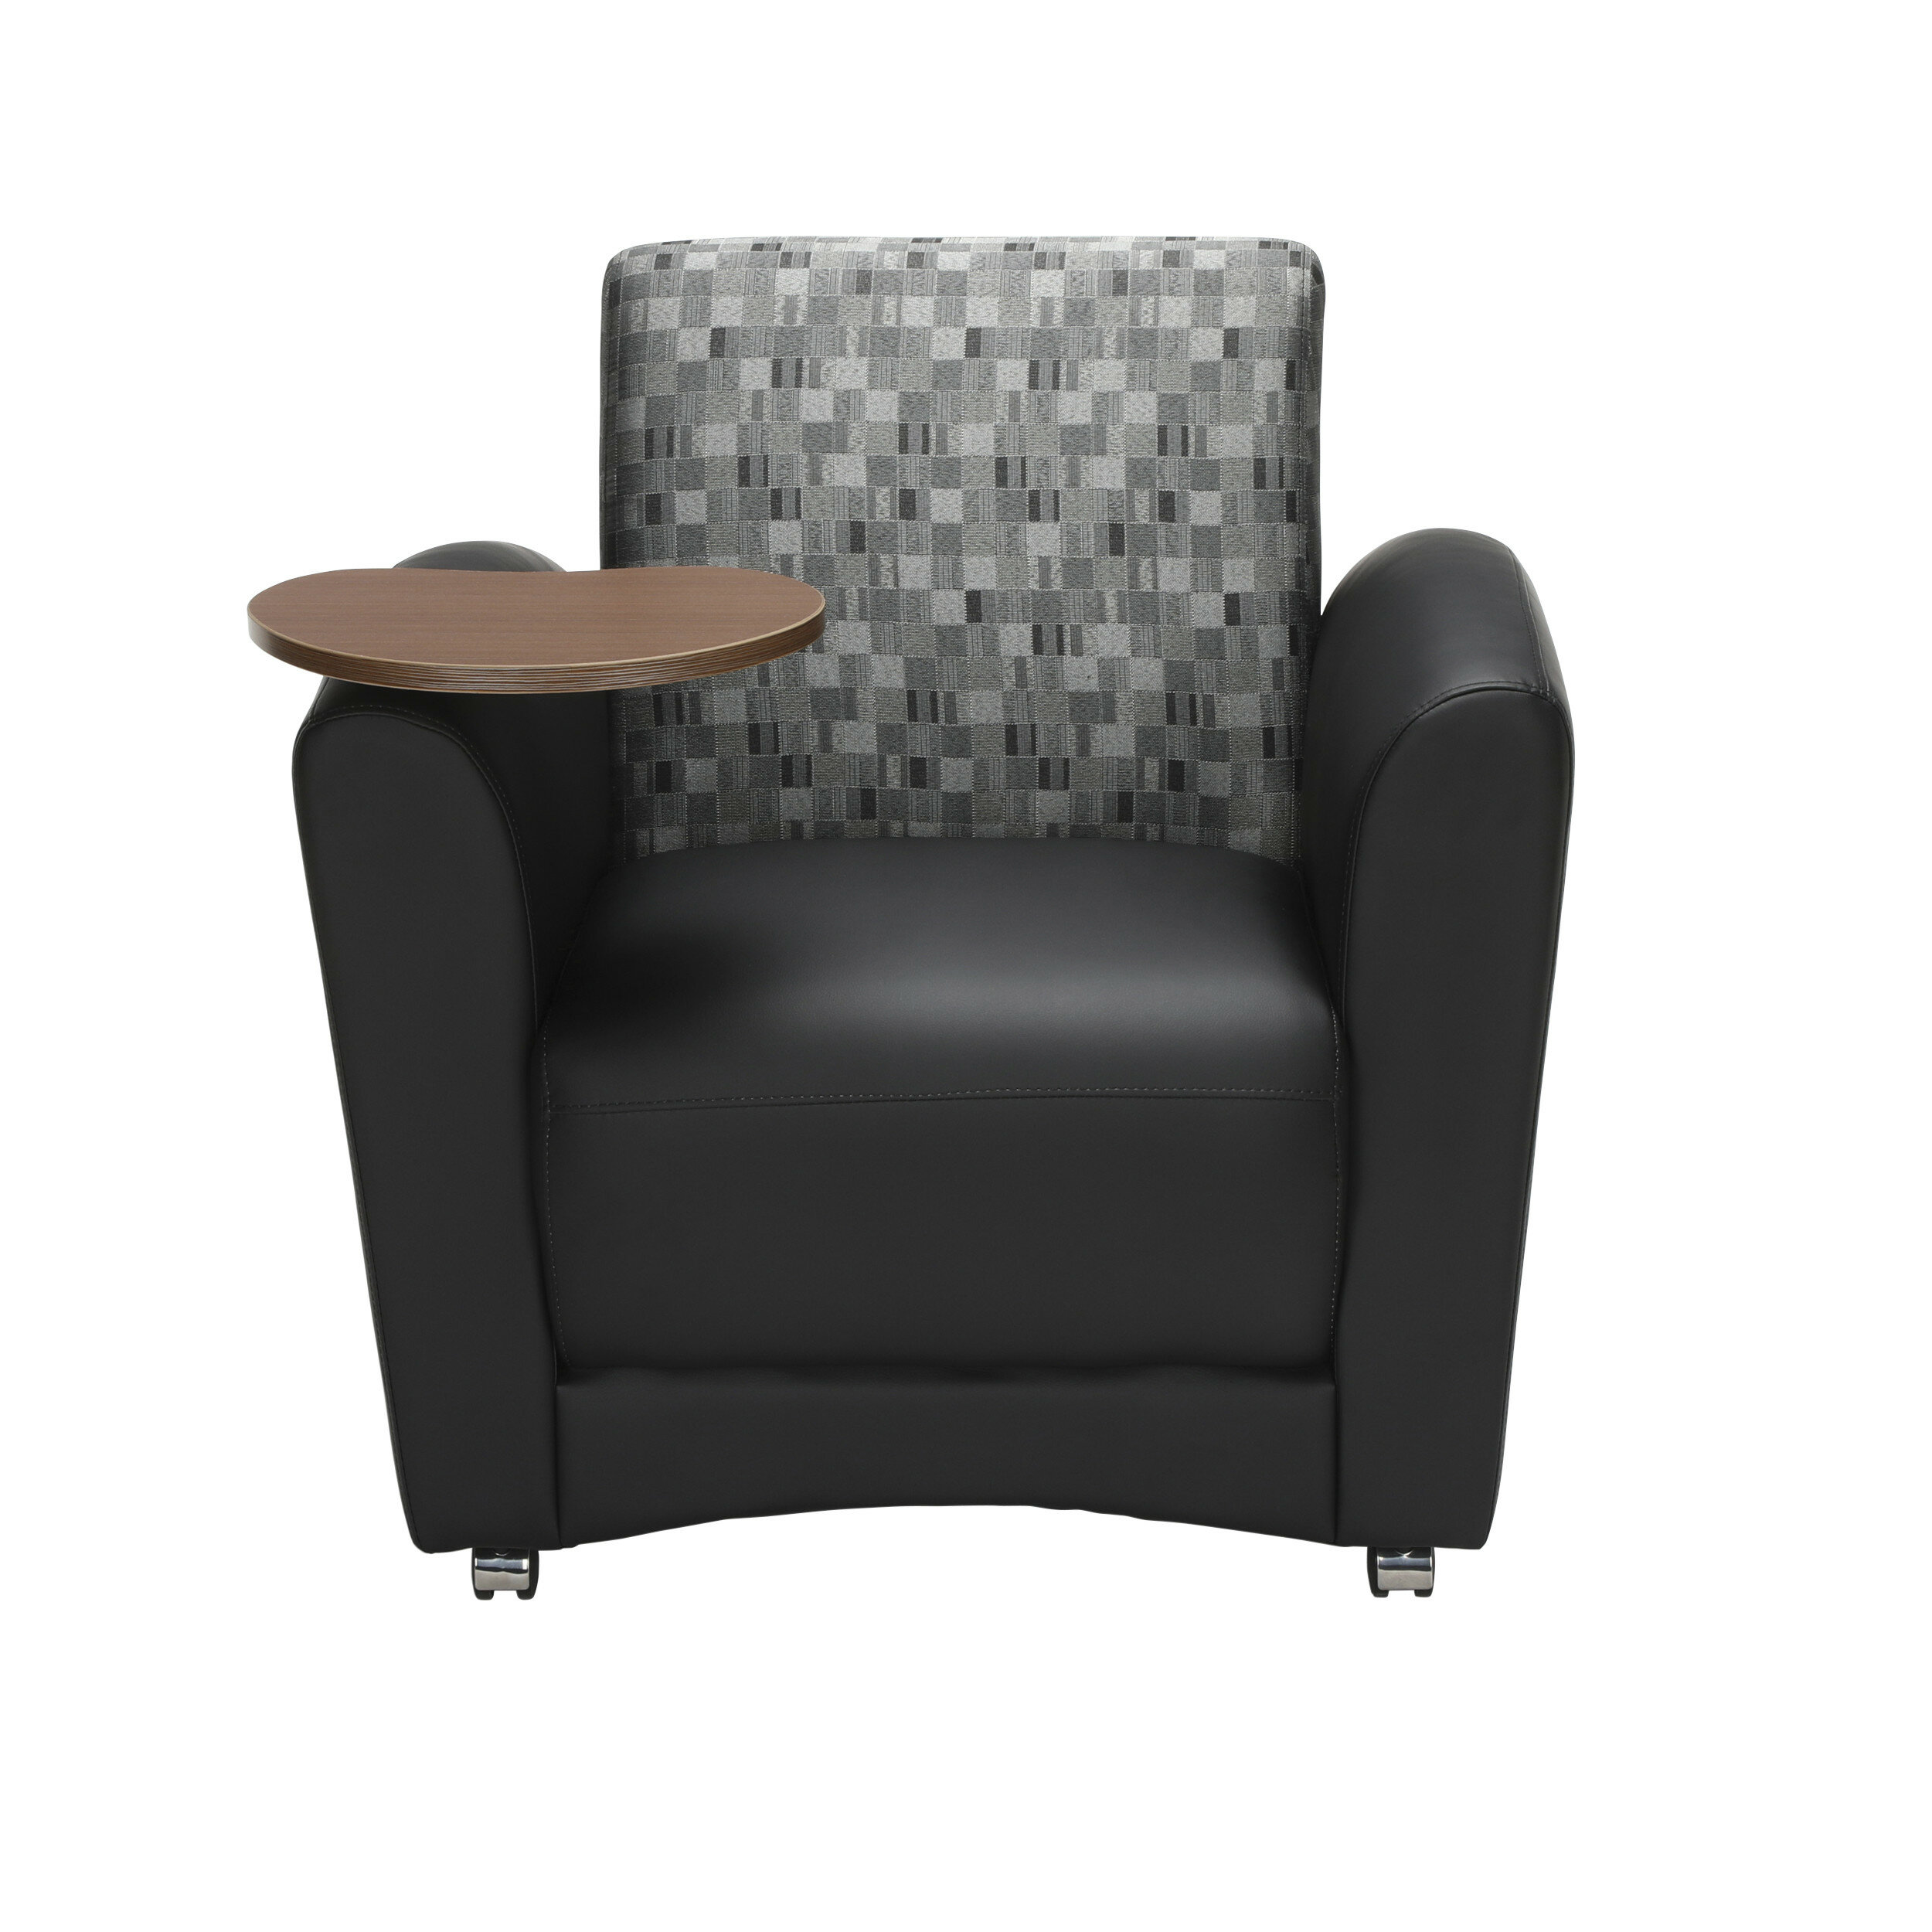 Terrific Ofm Interplay With Tablet Lounge Chair Ibusinesslaw Wood Chair Design Ideas Ibusinesslaworg